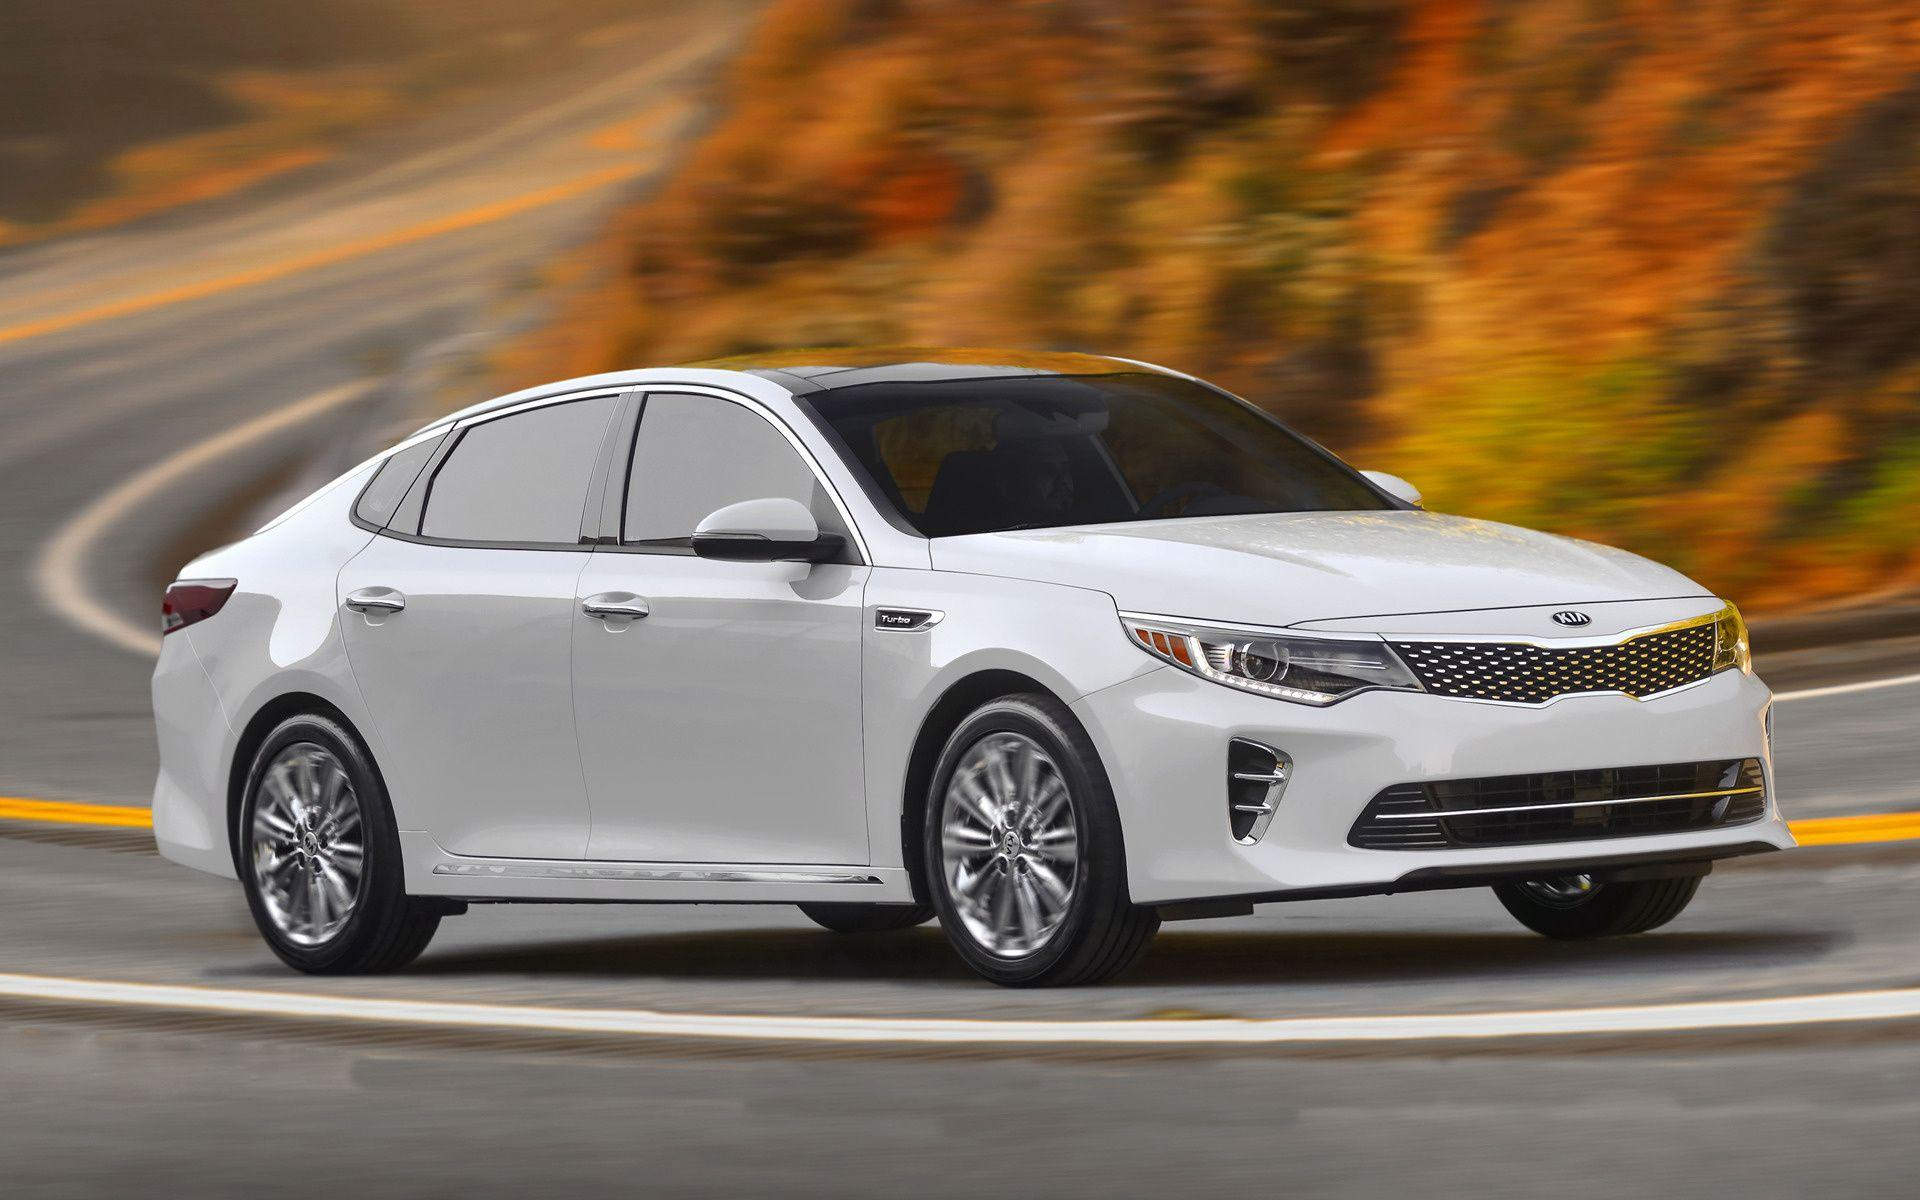 Kia Optima SXL (2016) Wallpapers and HD Images - Car Pixel